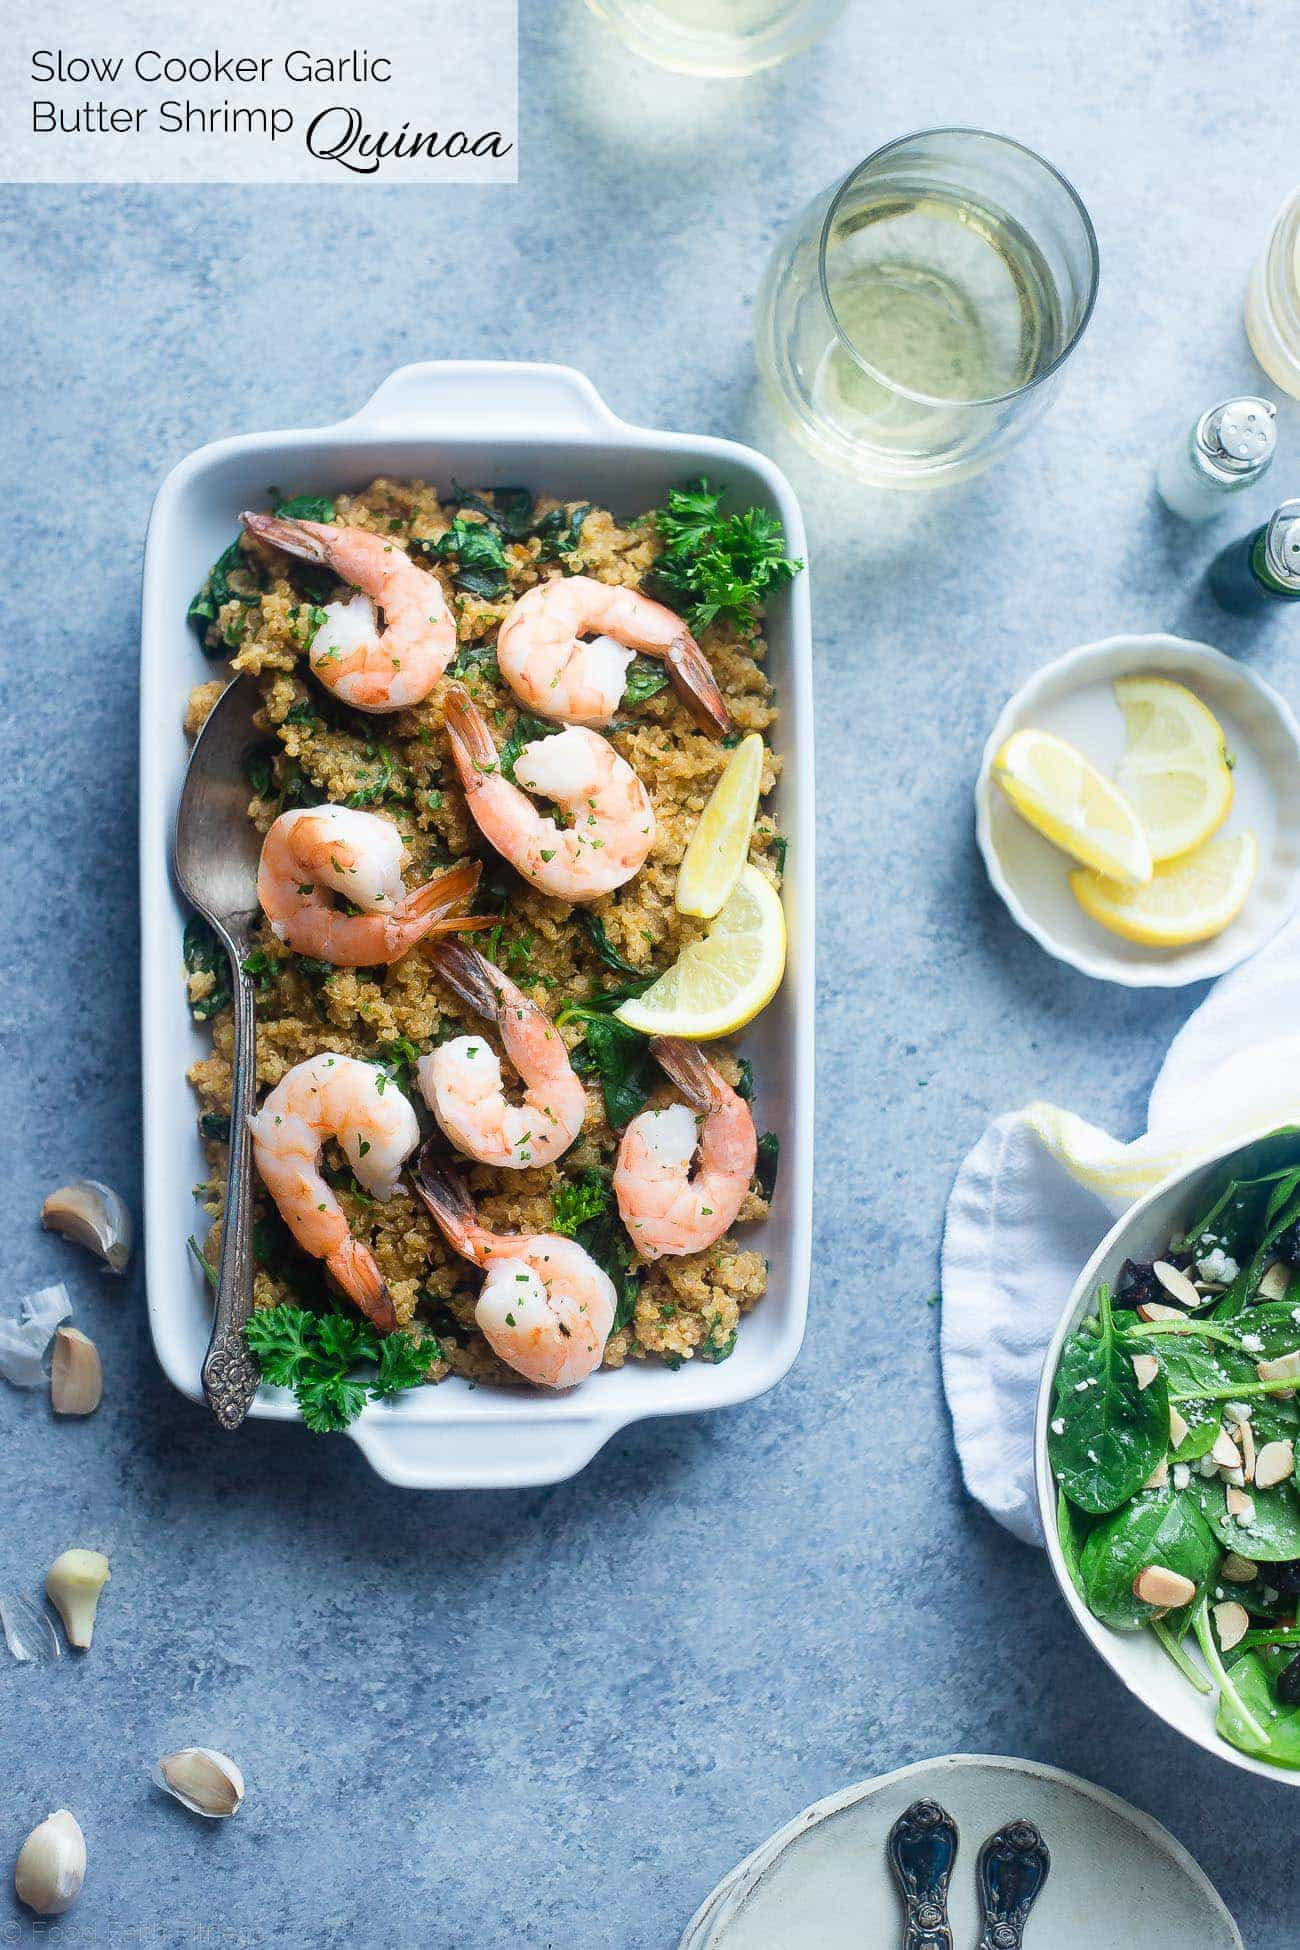 Slow Cooker Garlic Butter Shrimp and Quinoa - This easy, 7 ingredient weeknight dinner is made in the slow cooker! It's a healthy, gluten and lactose free meal that the whole family will love! | Foodfaithfitness.com | @FoodFaithFit